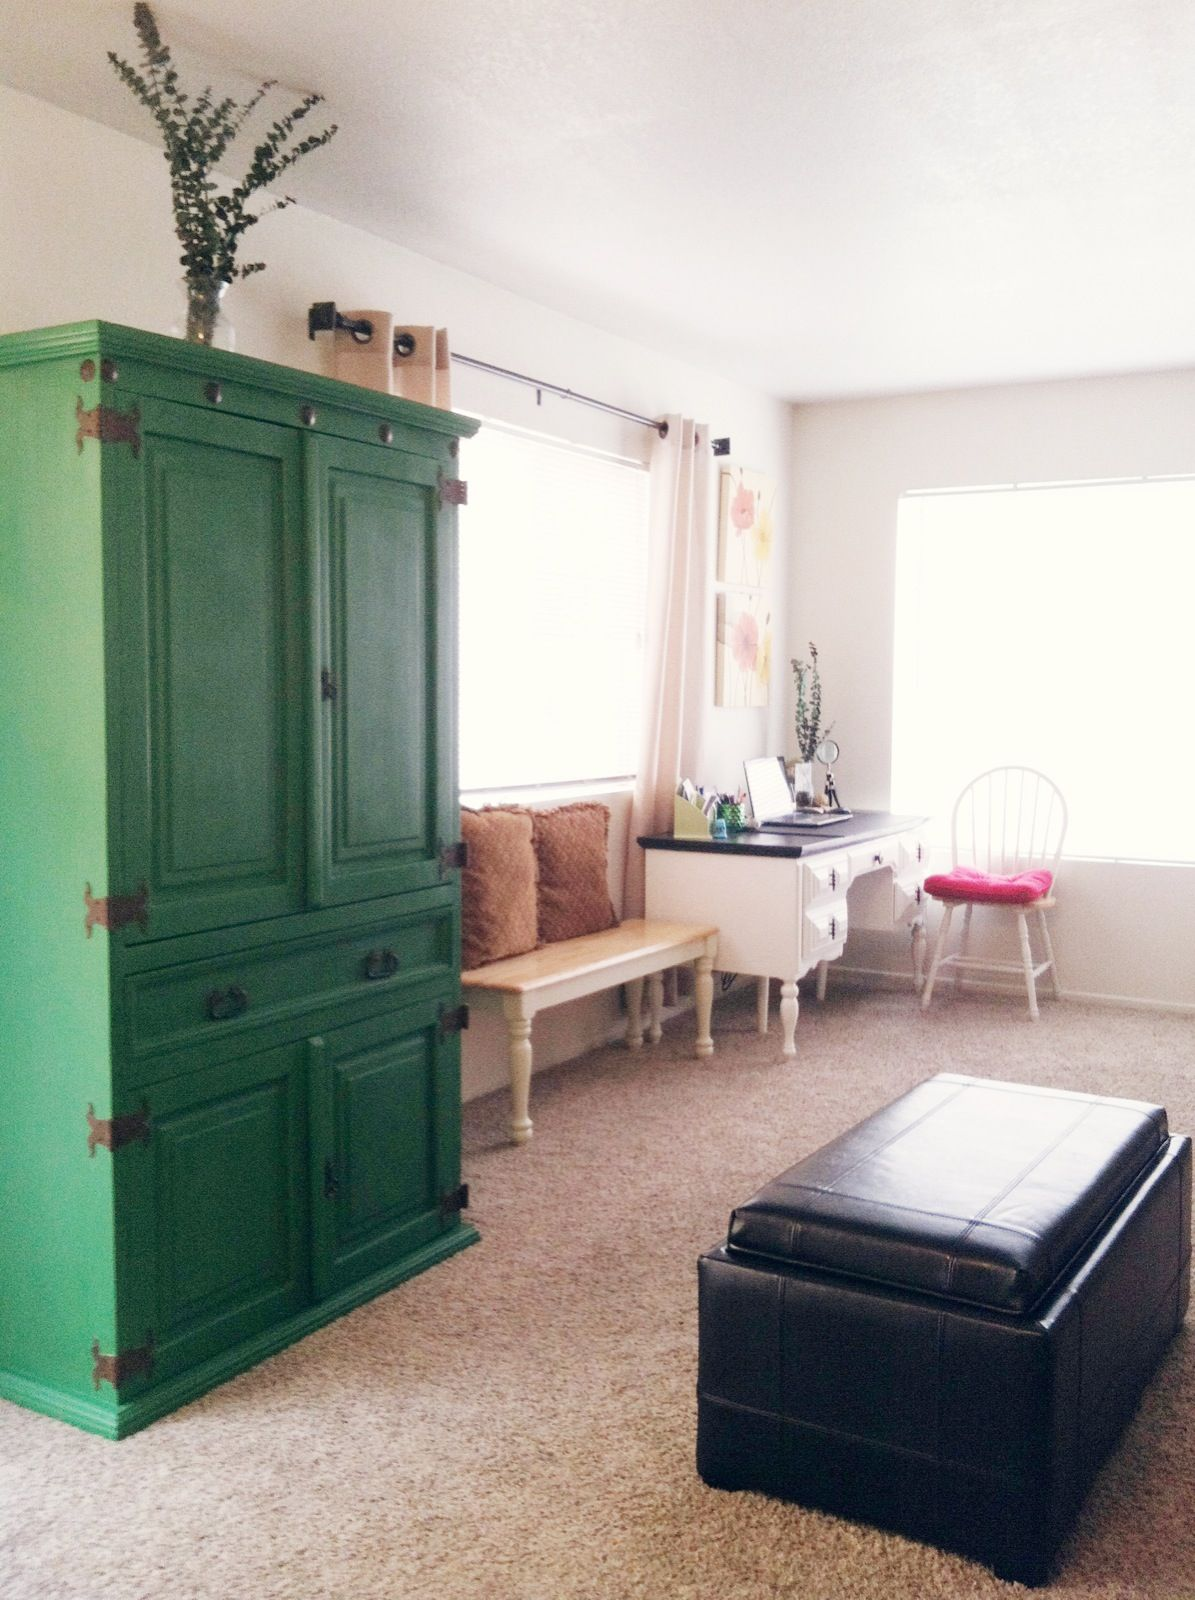 Muebles Ross Bright Green Armoire Renovar Muebles Y Decoracion